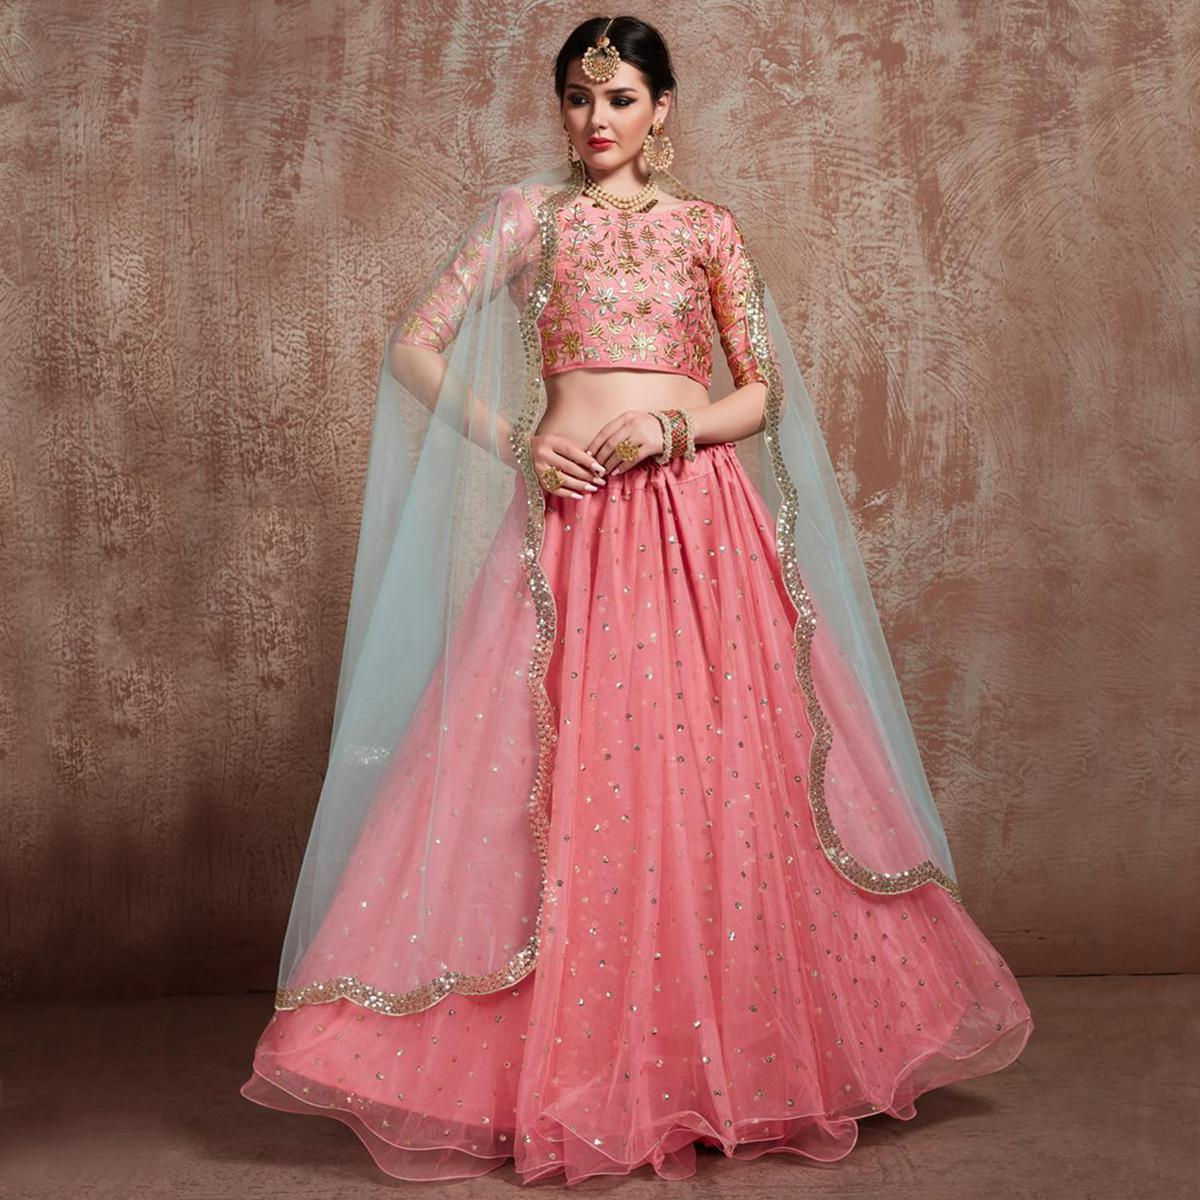 Sensational Pink Colored Partywear Embroidered Soft Net Lehenga Choli